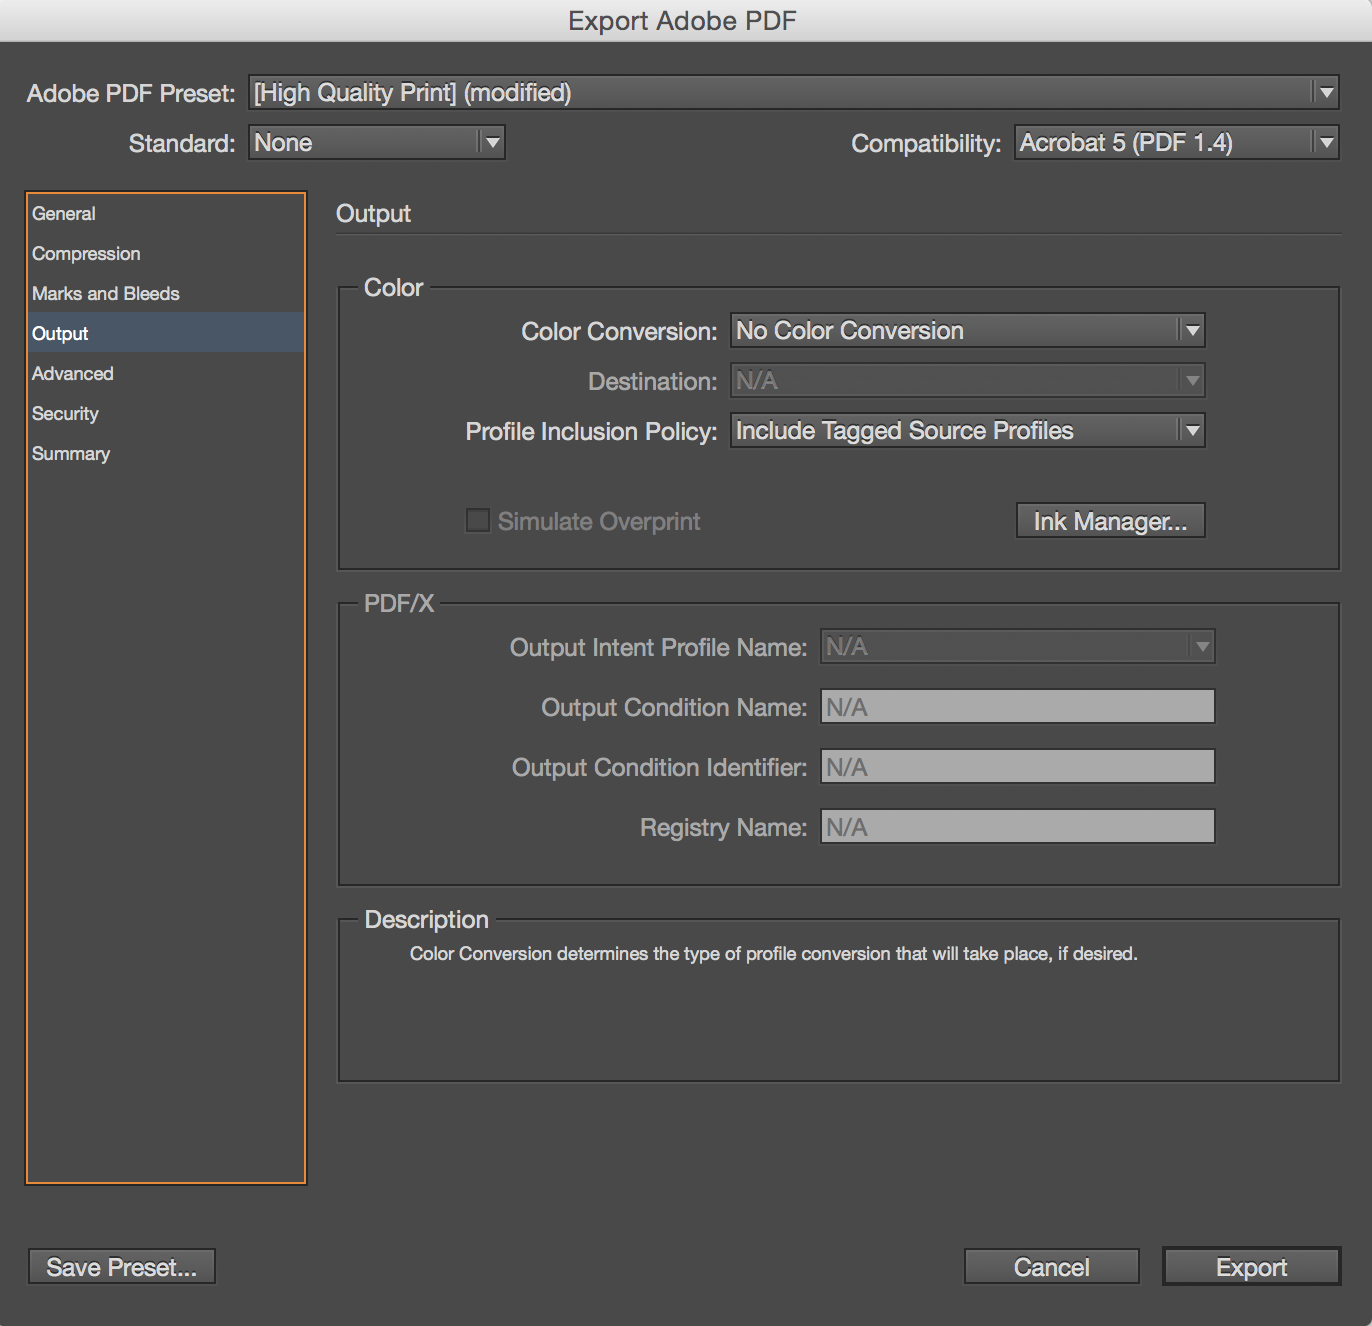 Pngs get squished in indesign svg download Fonts: Exporting from Indesign - Graphic Design Stack Exchange svg download